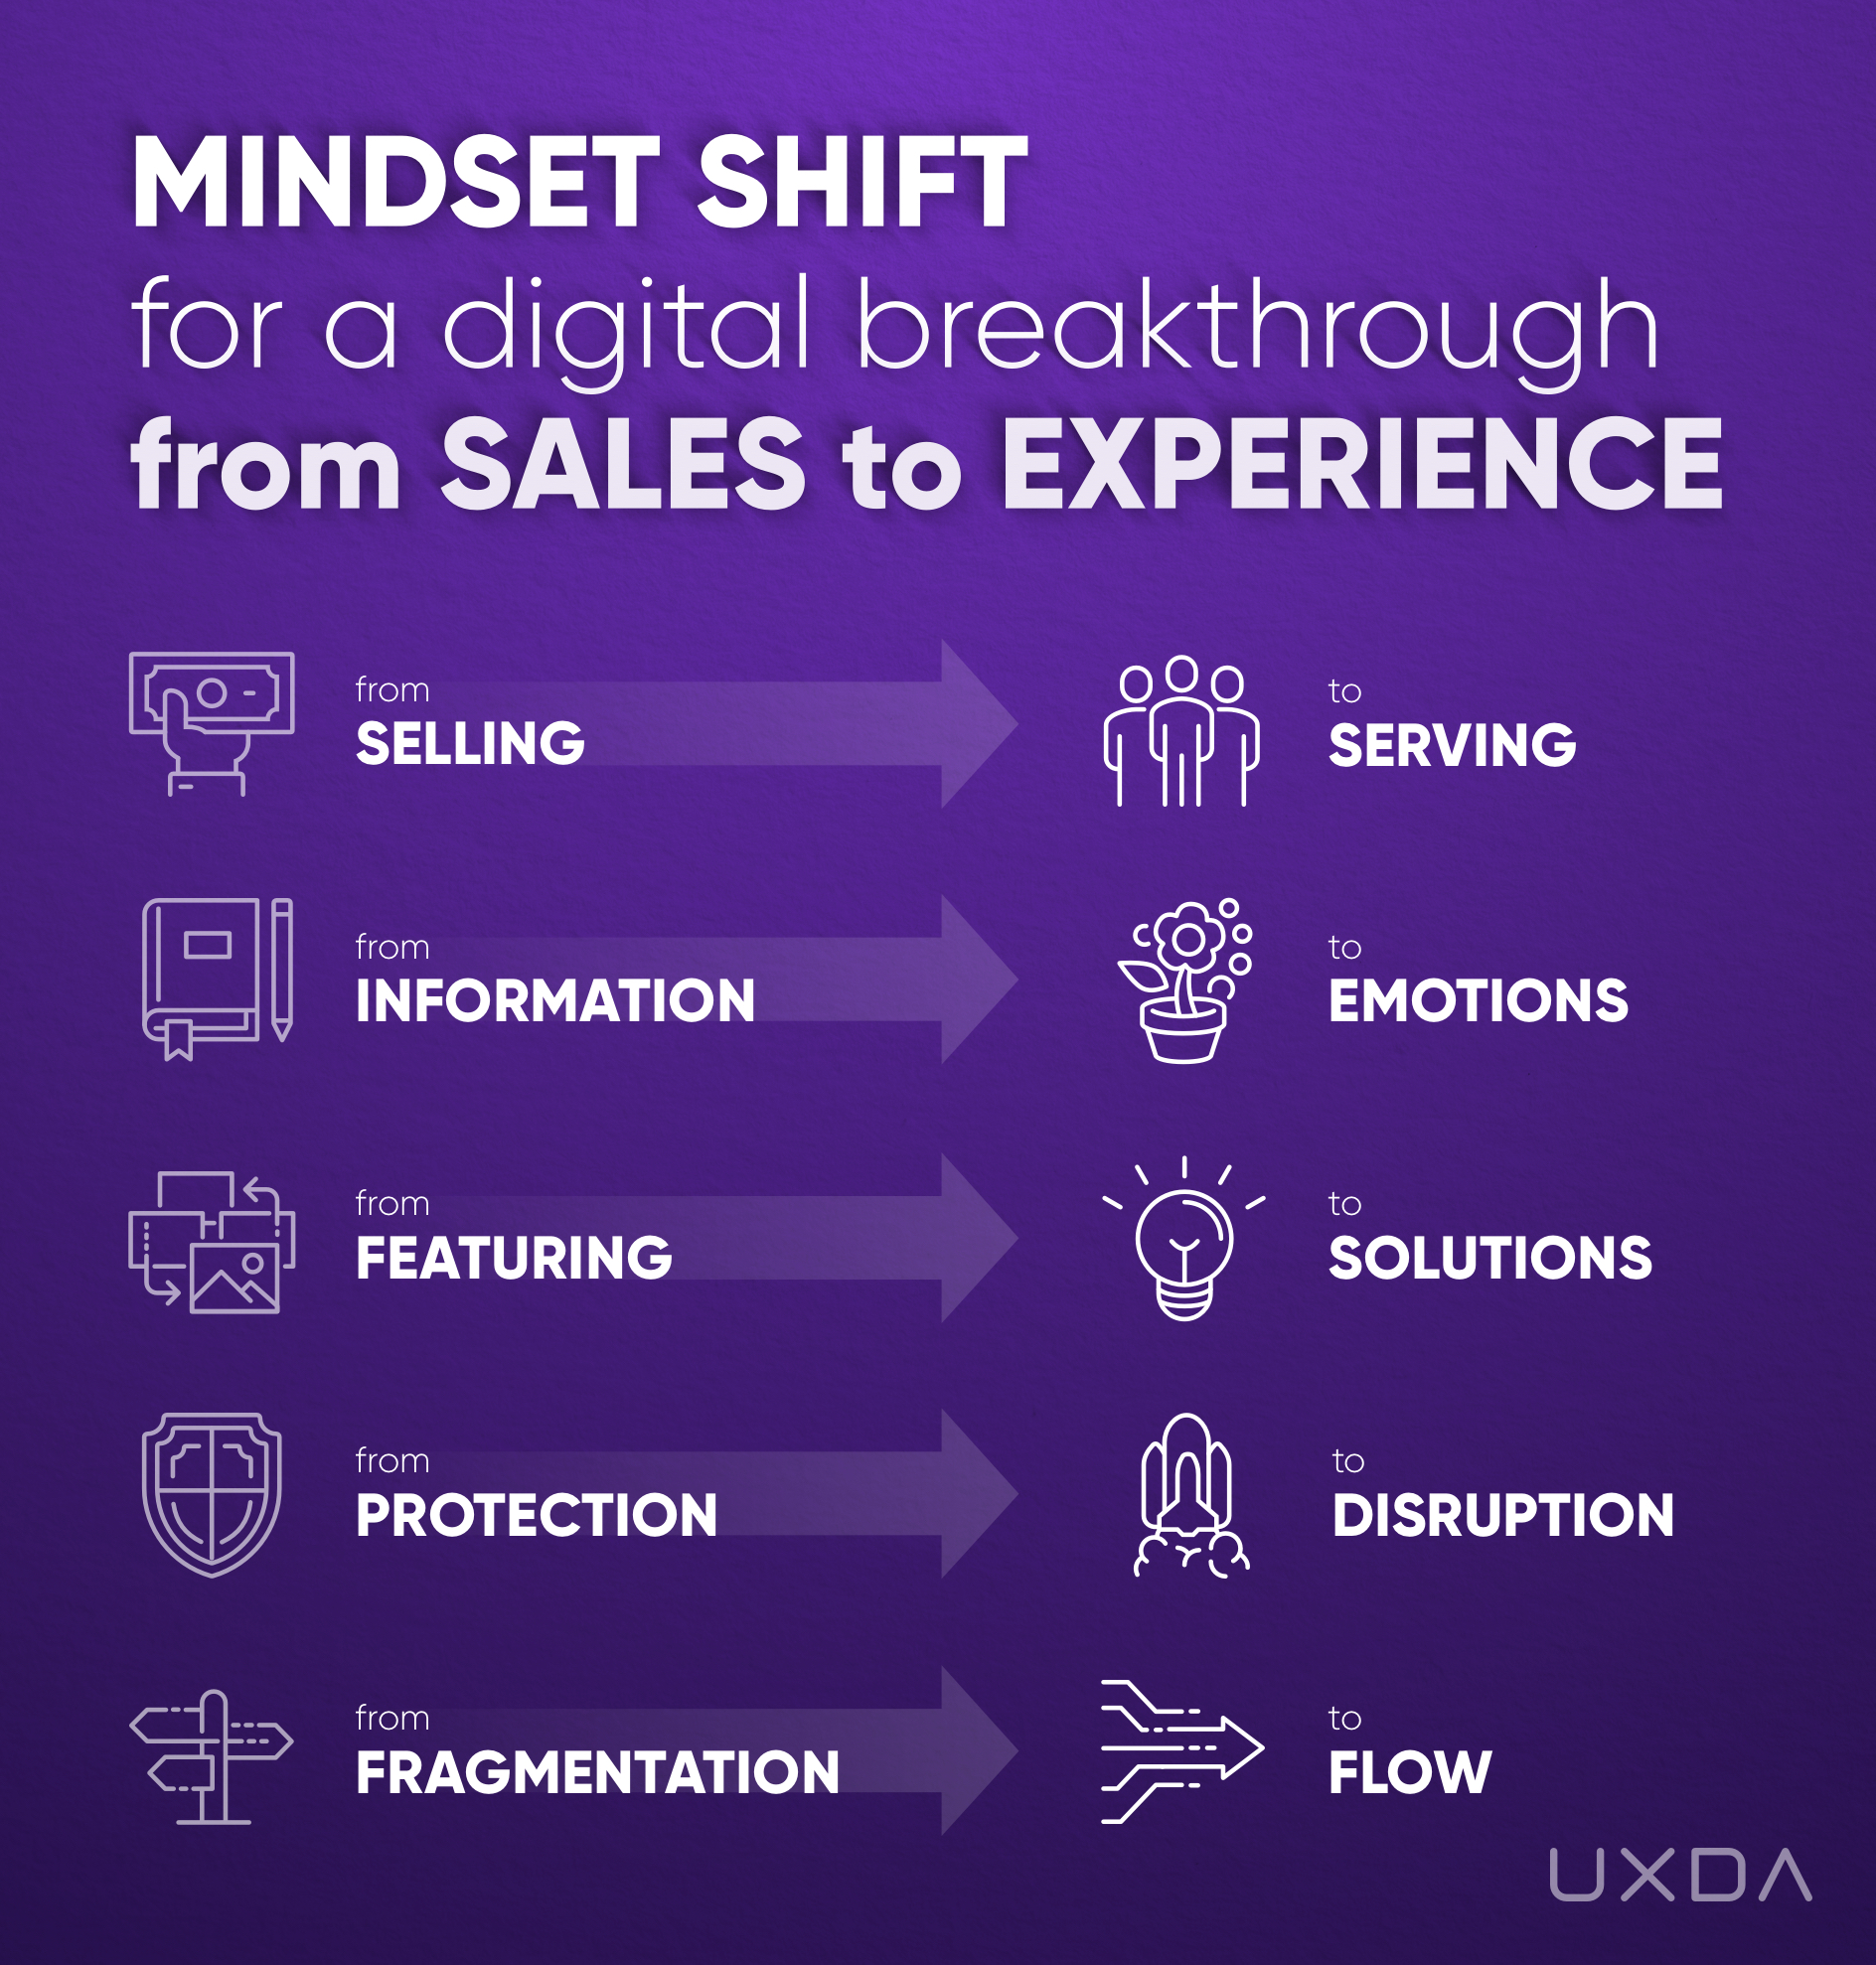 ai-powered-contextual-cx-becomes-a-digital-banking-experience-mindset-photo.jpg